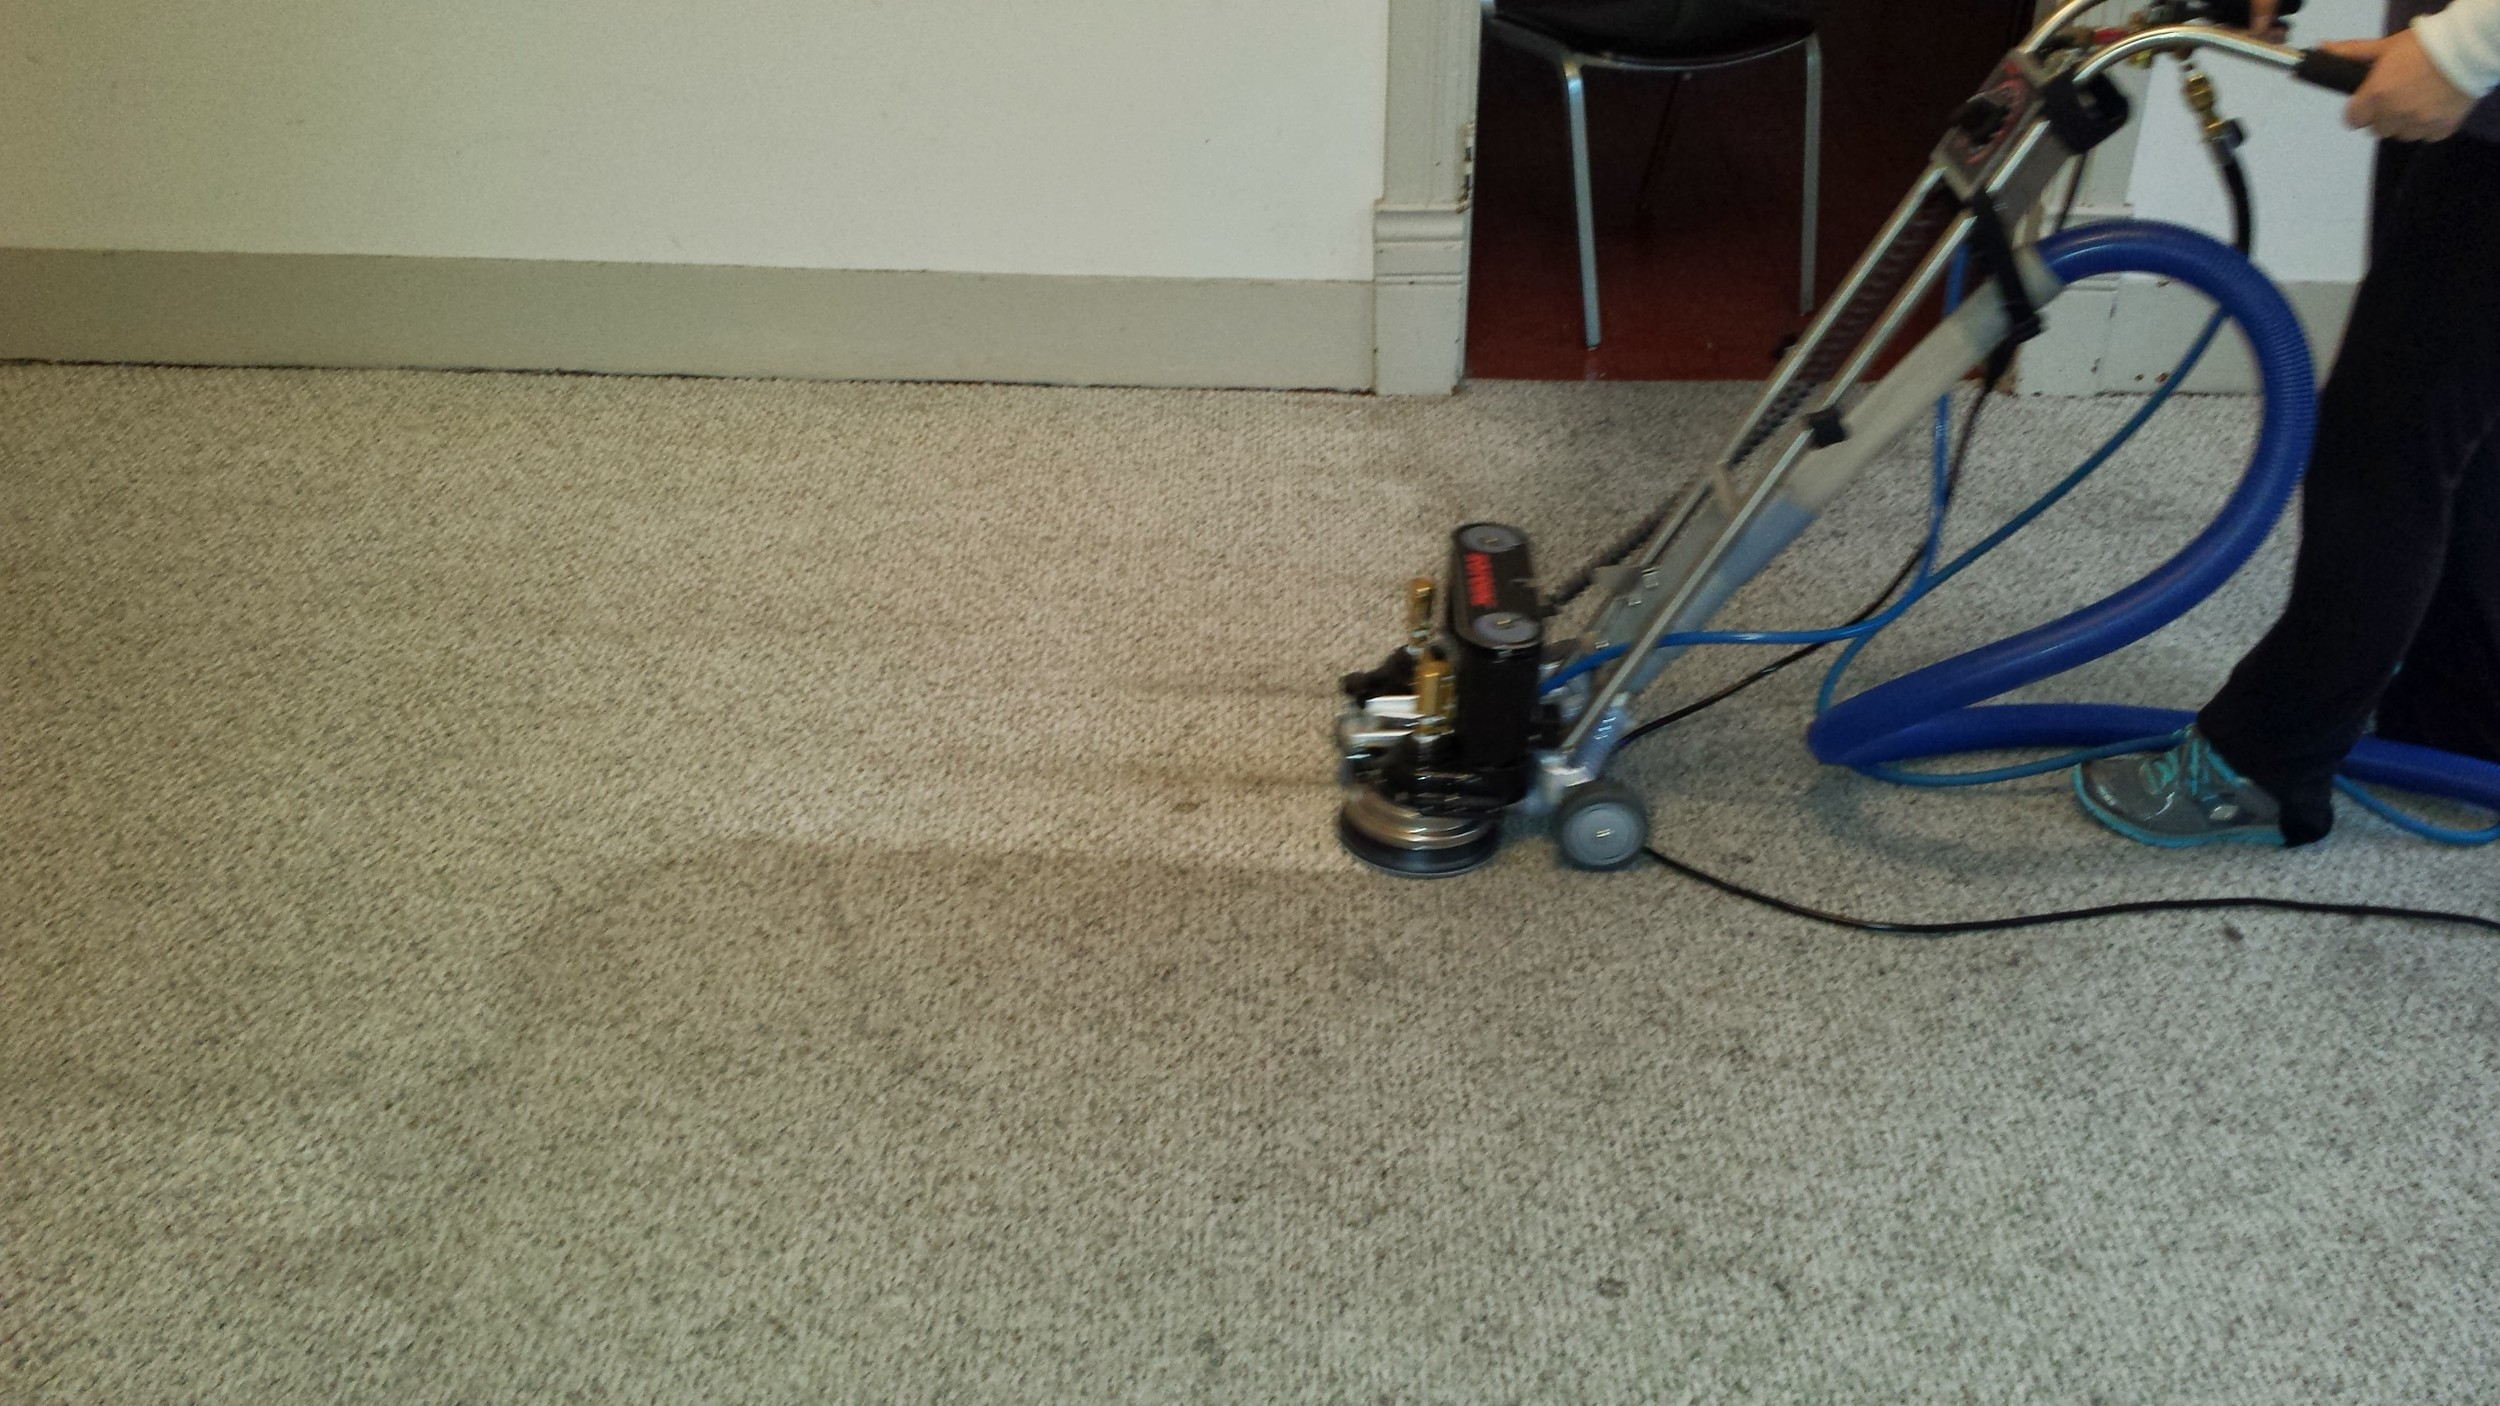 Carpet cleaning machine actively cleaning